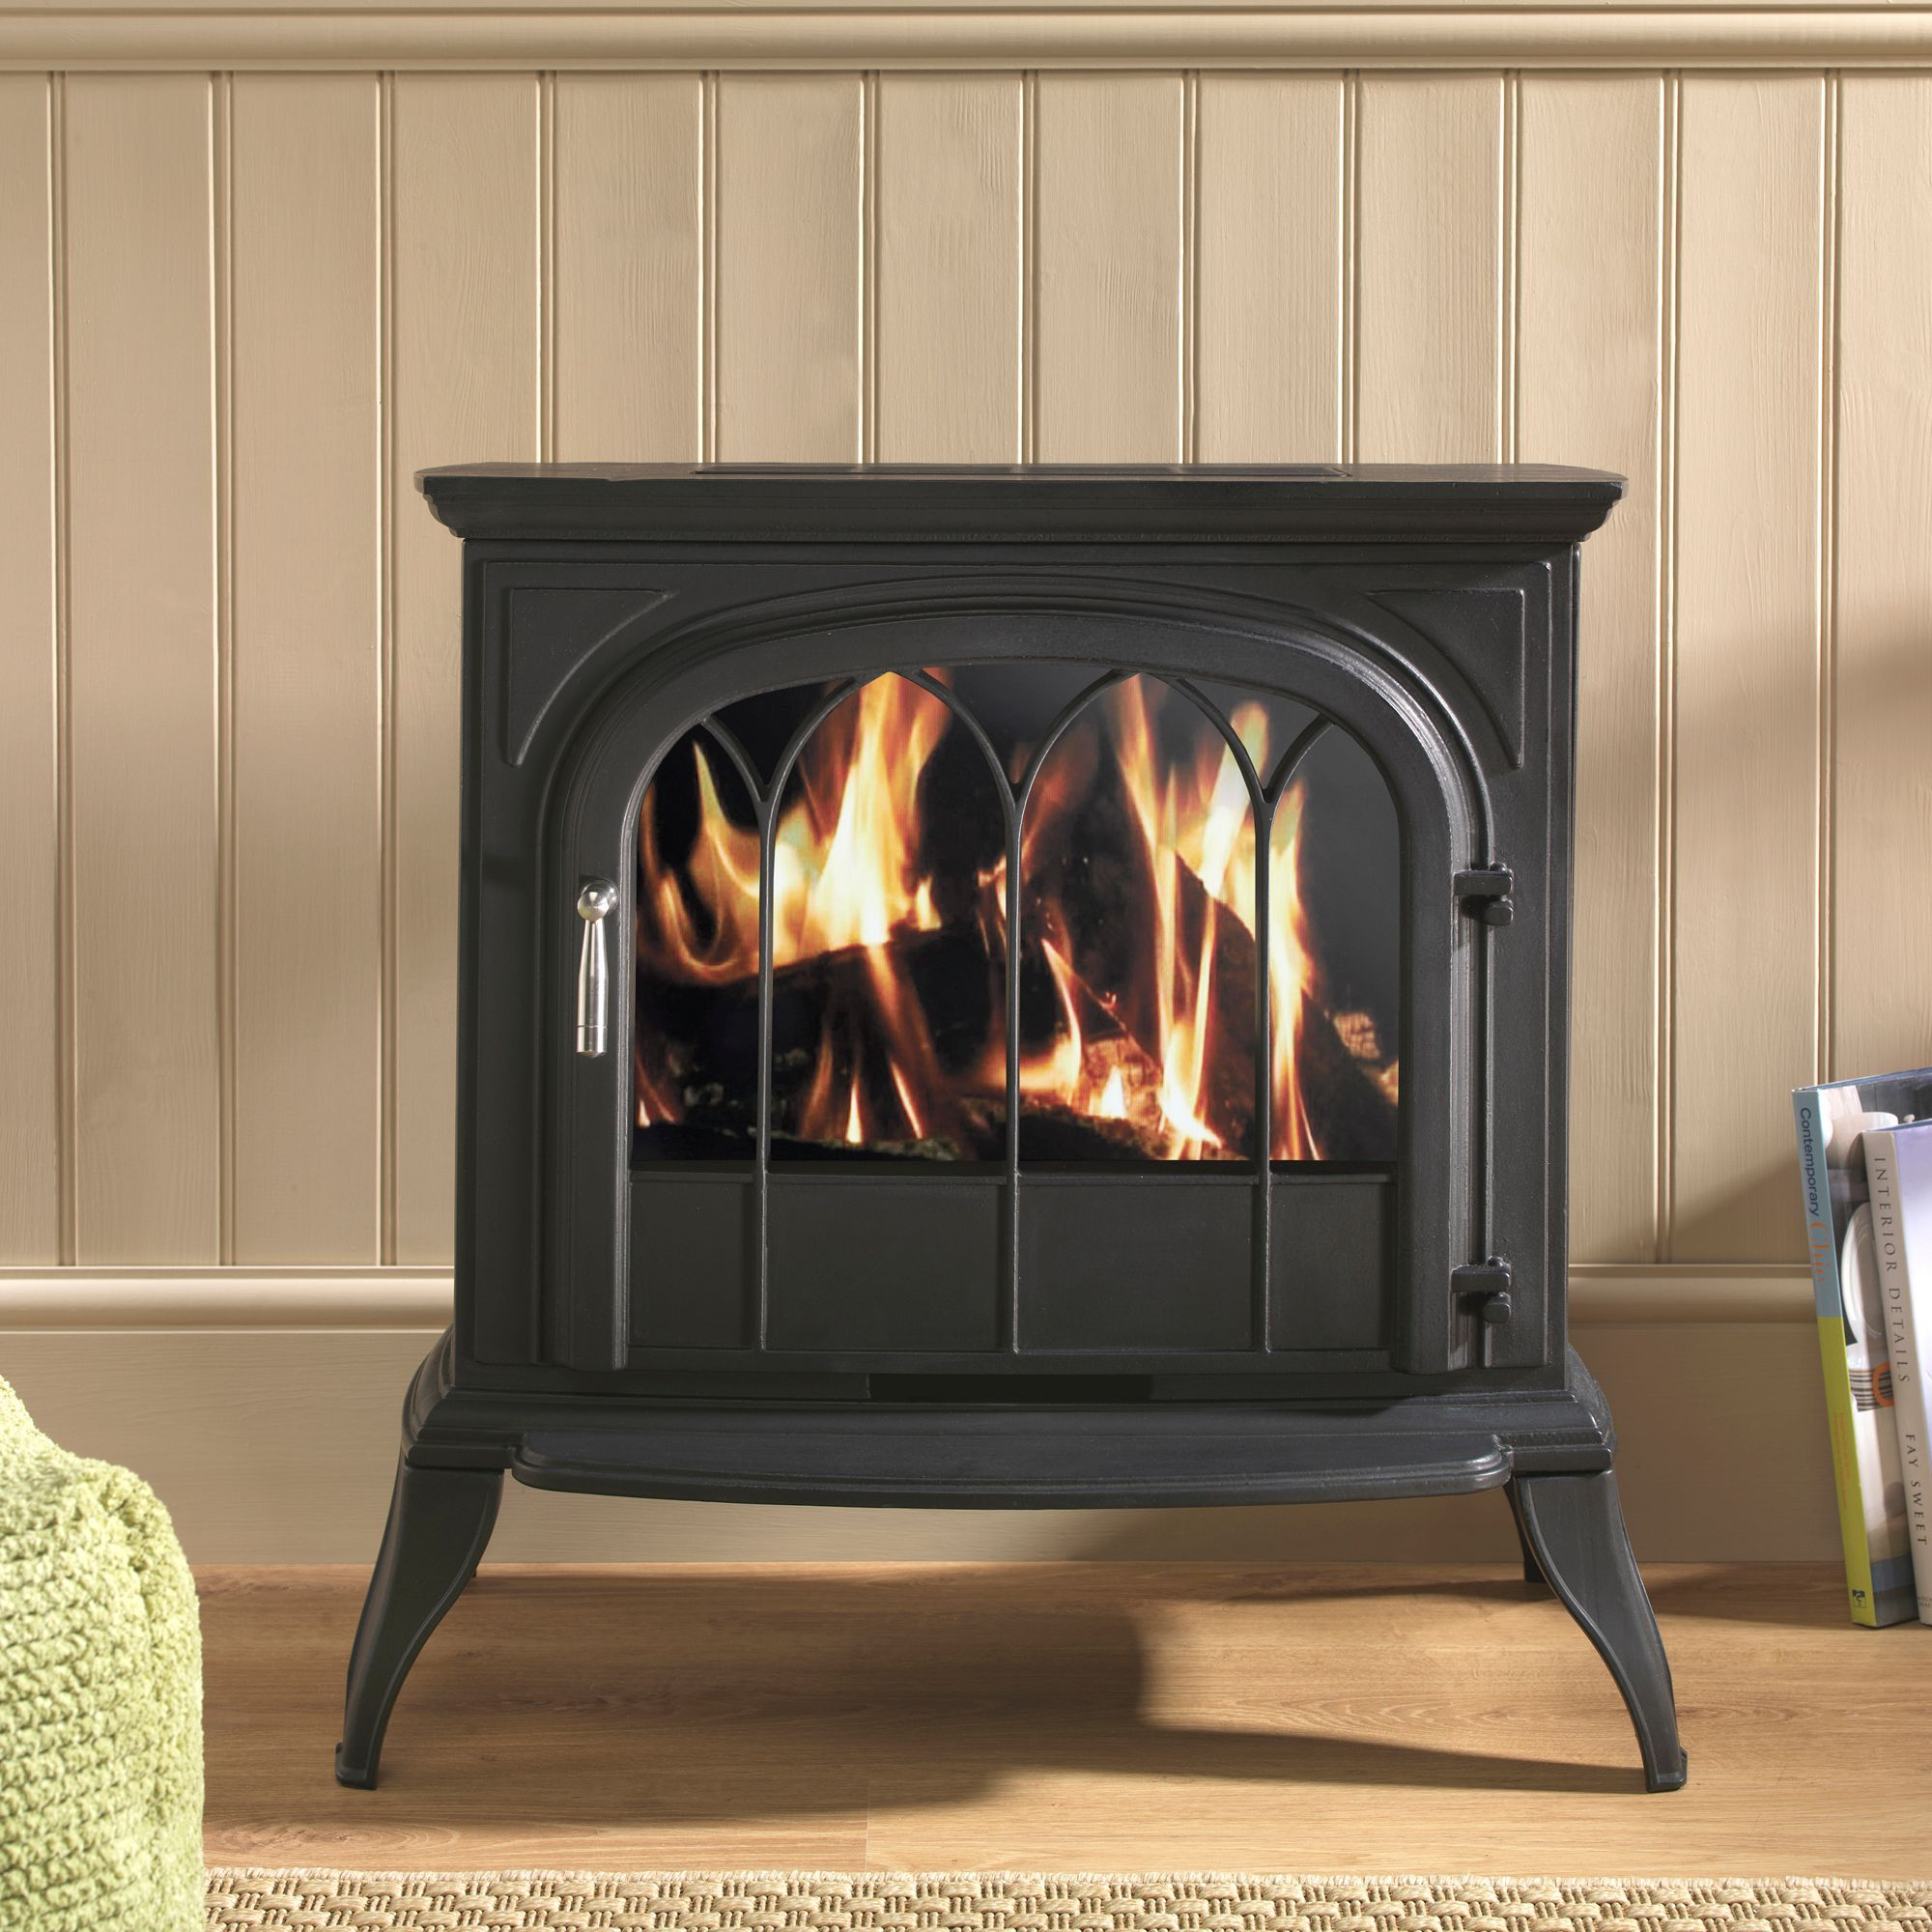 This Classic Black Electric Stove Looks Like A Traditional Log Burner Add To Your Home To Create A Hygge Cosy Fe Flueless Gas Stove Gas Stove Black Gas Stove